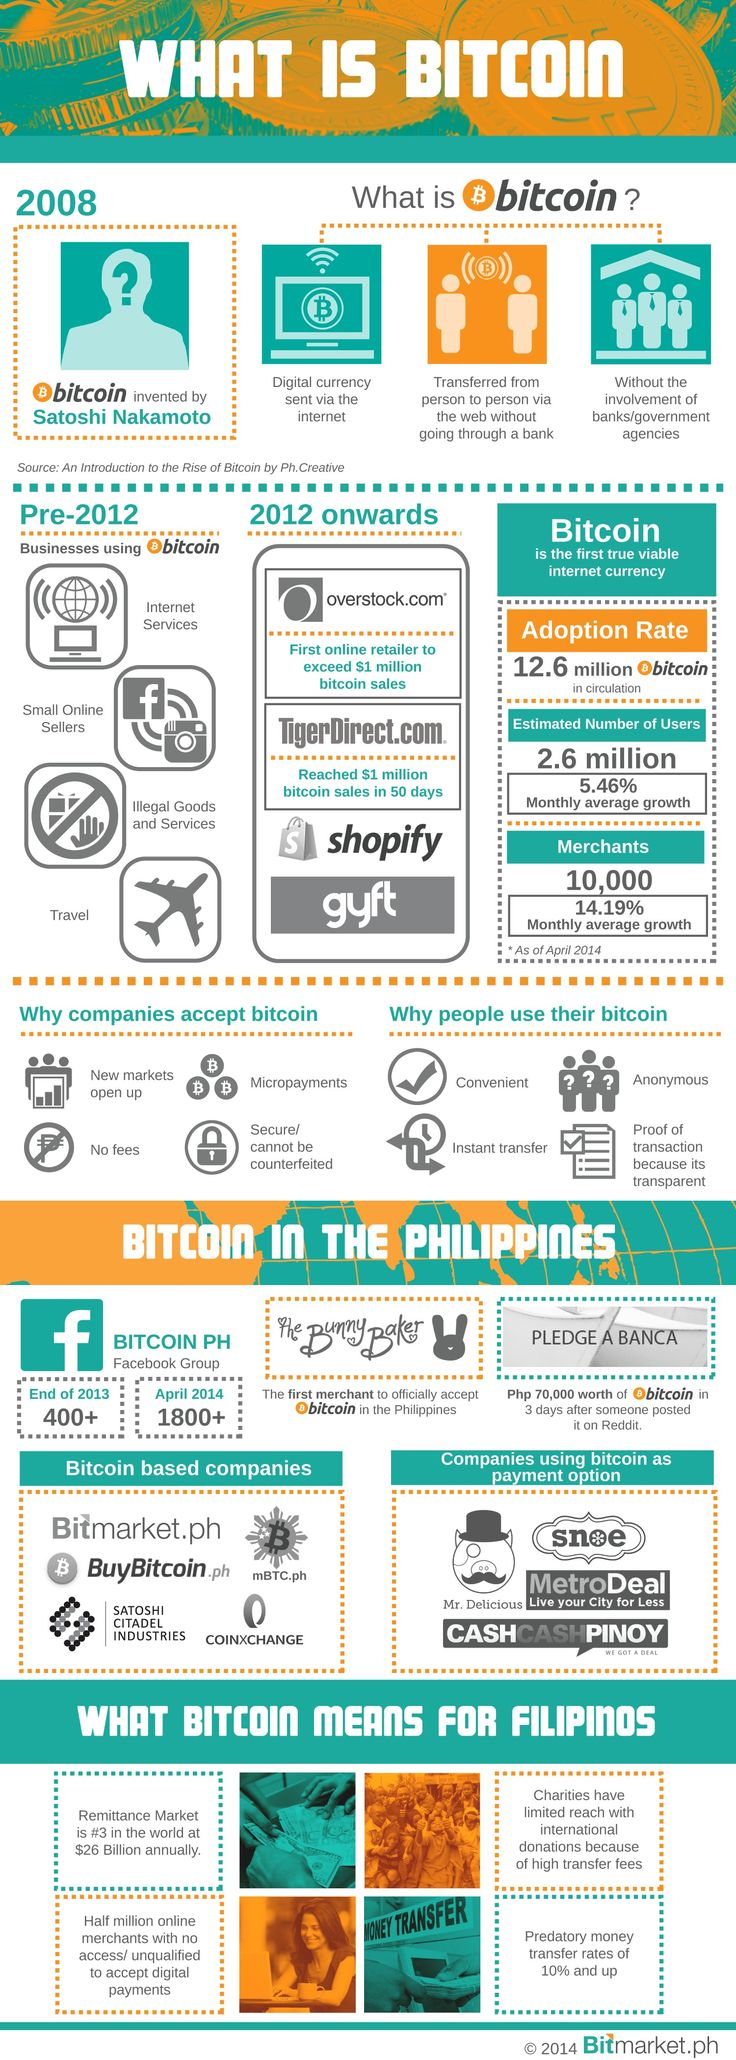 http://thumbnails.visually.netdna-cdn.com/WhatisBitcoin_53755cc47e095_w1500.png source via http://visual.ly/what-bitcoin-0